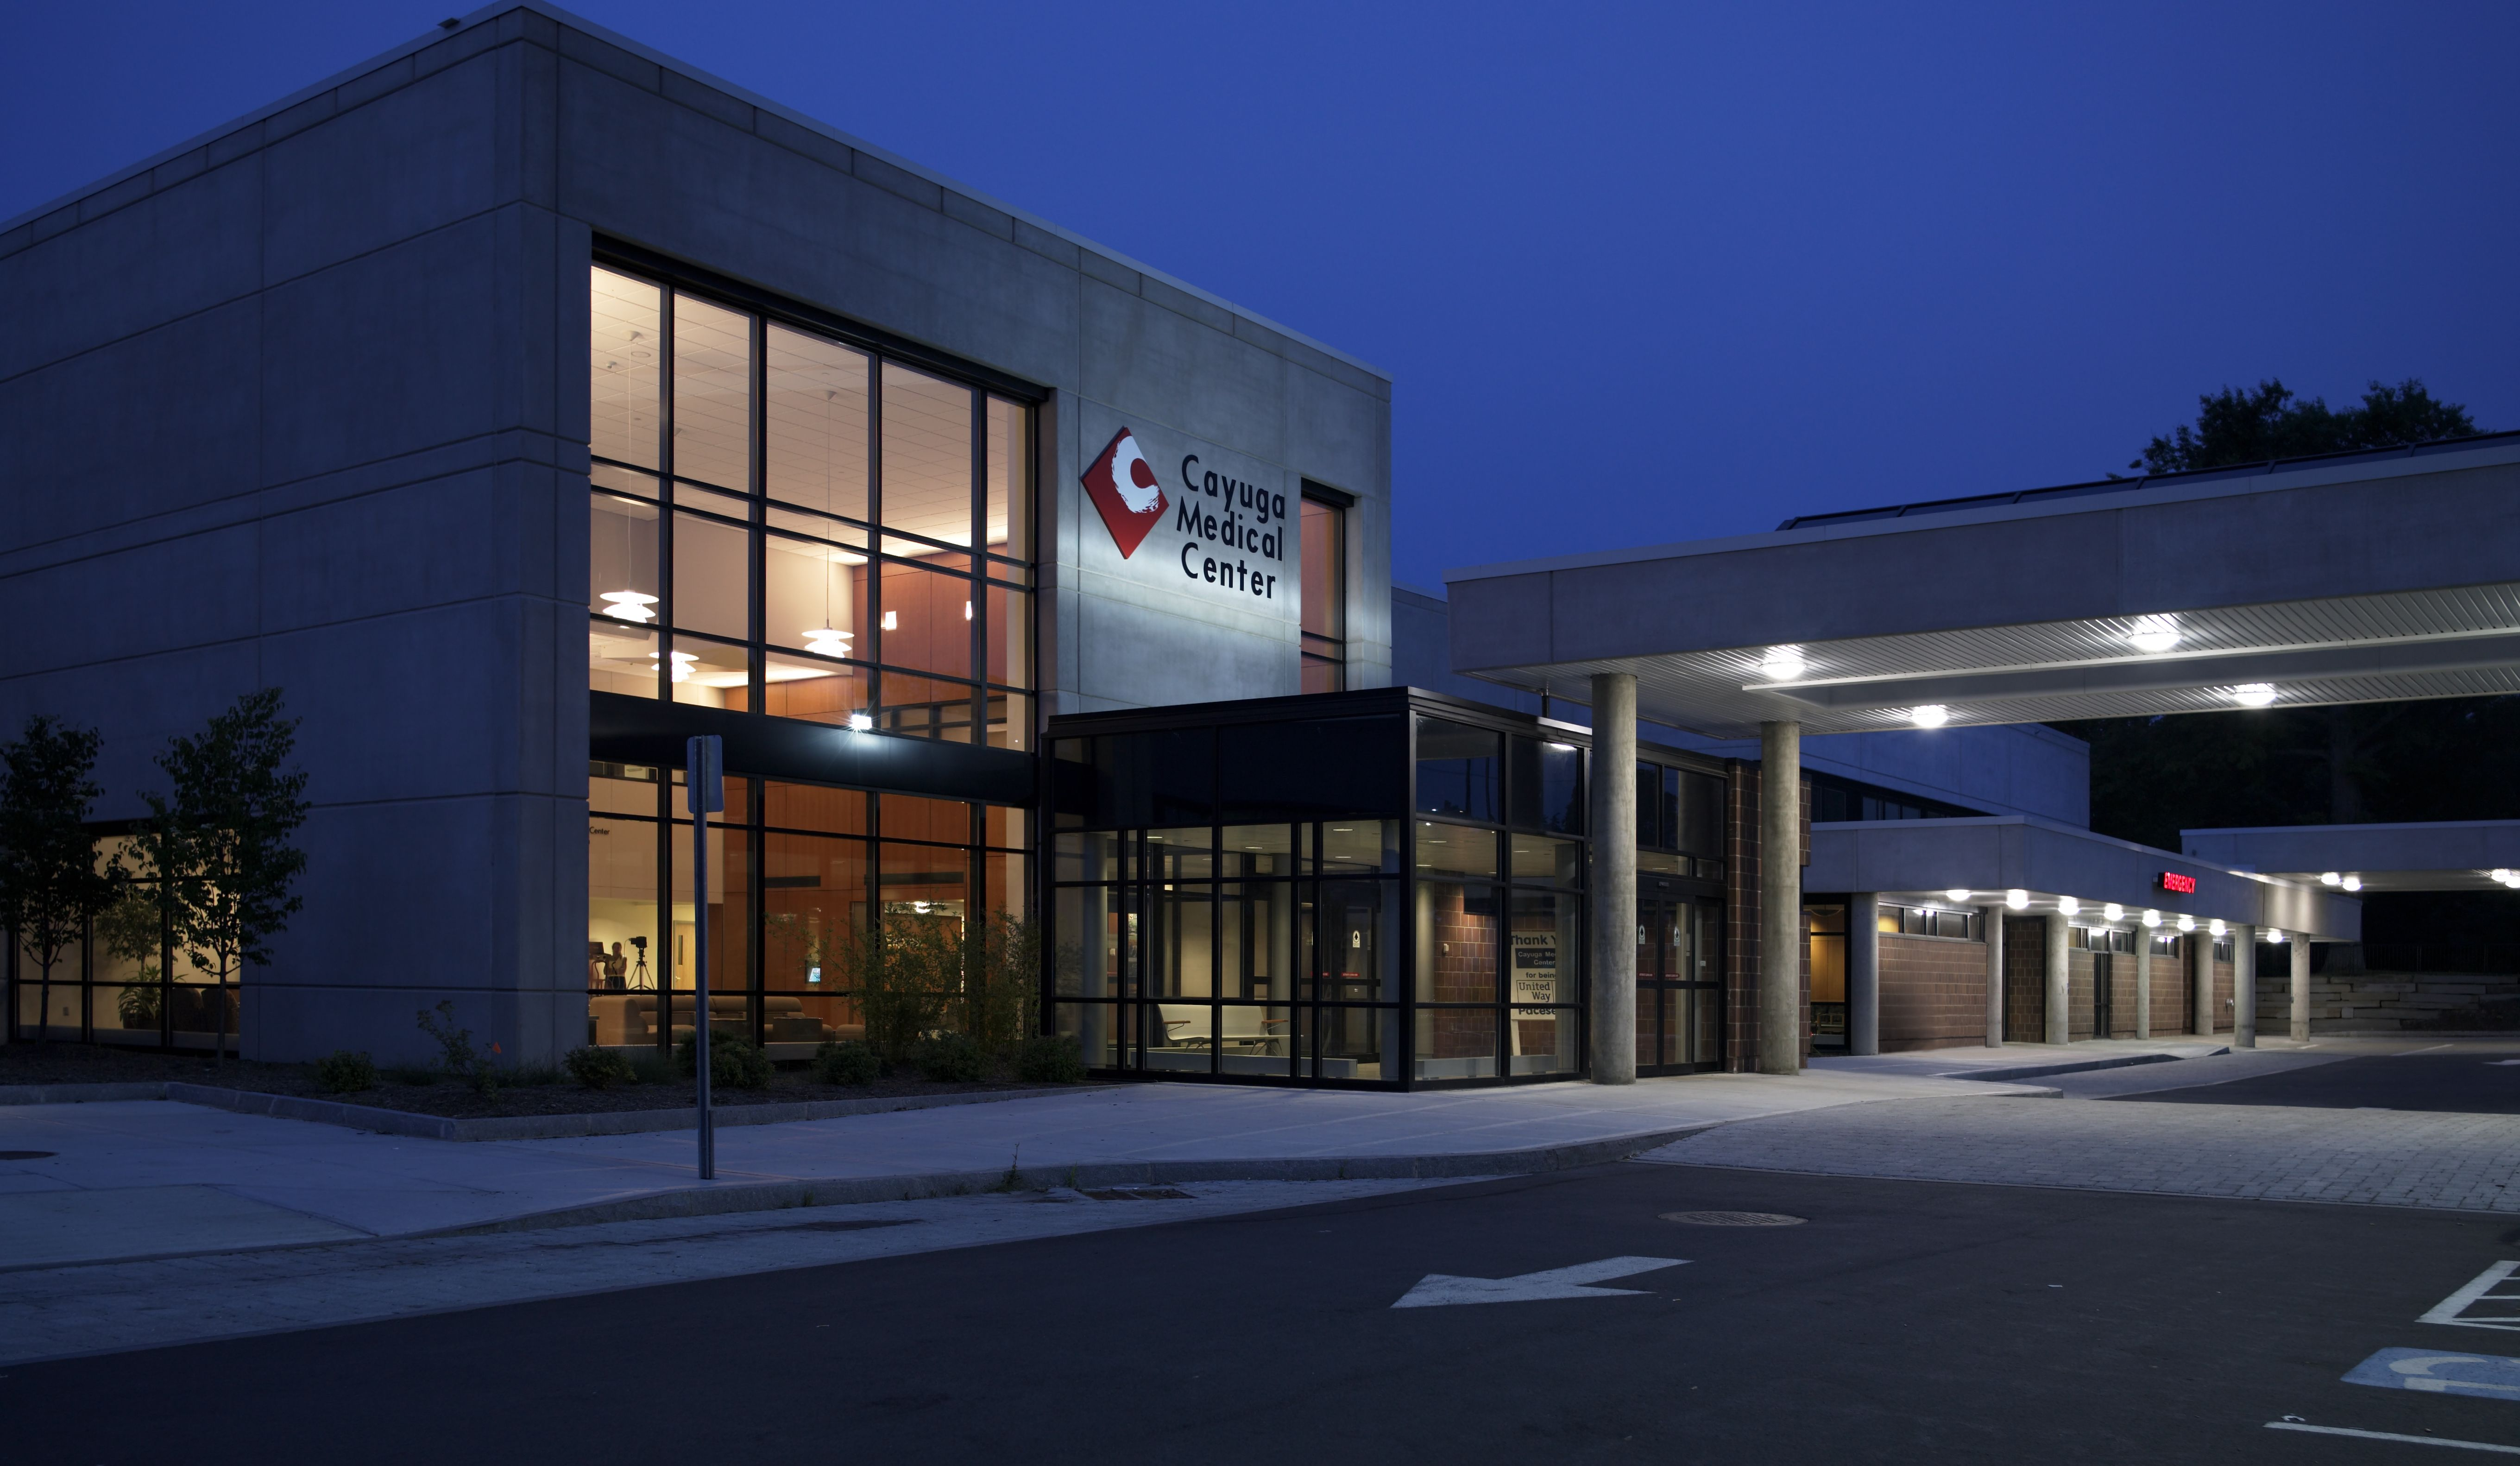 Cayuga medical centers southwest addition is the first